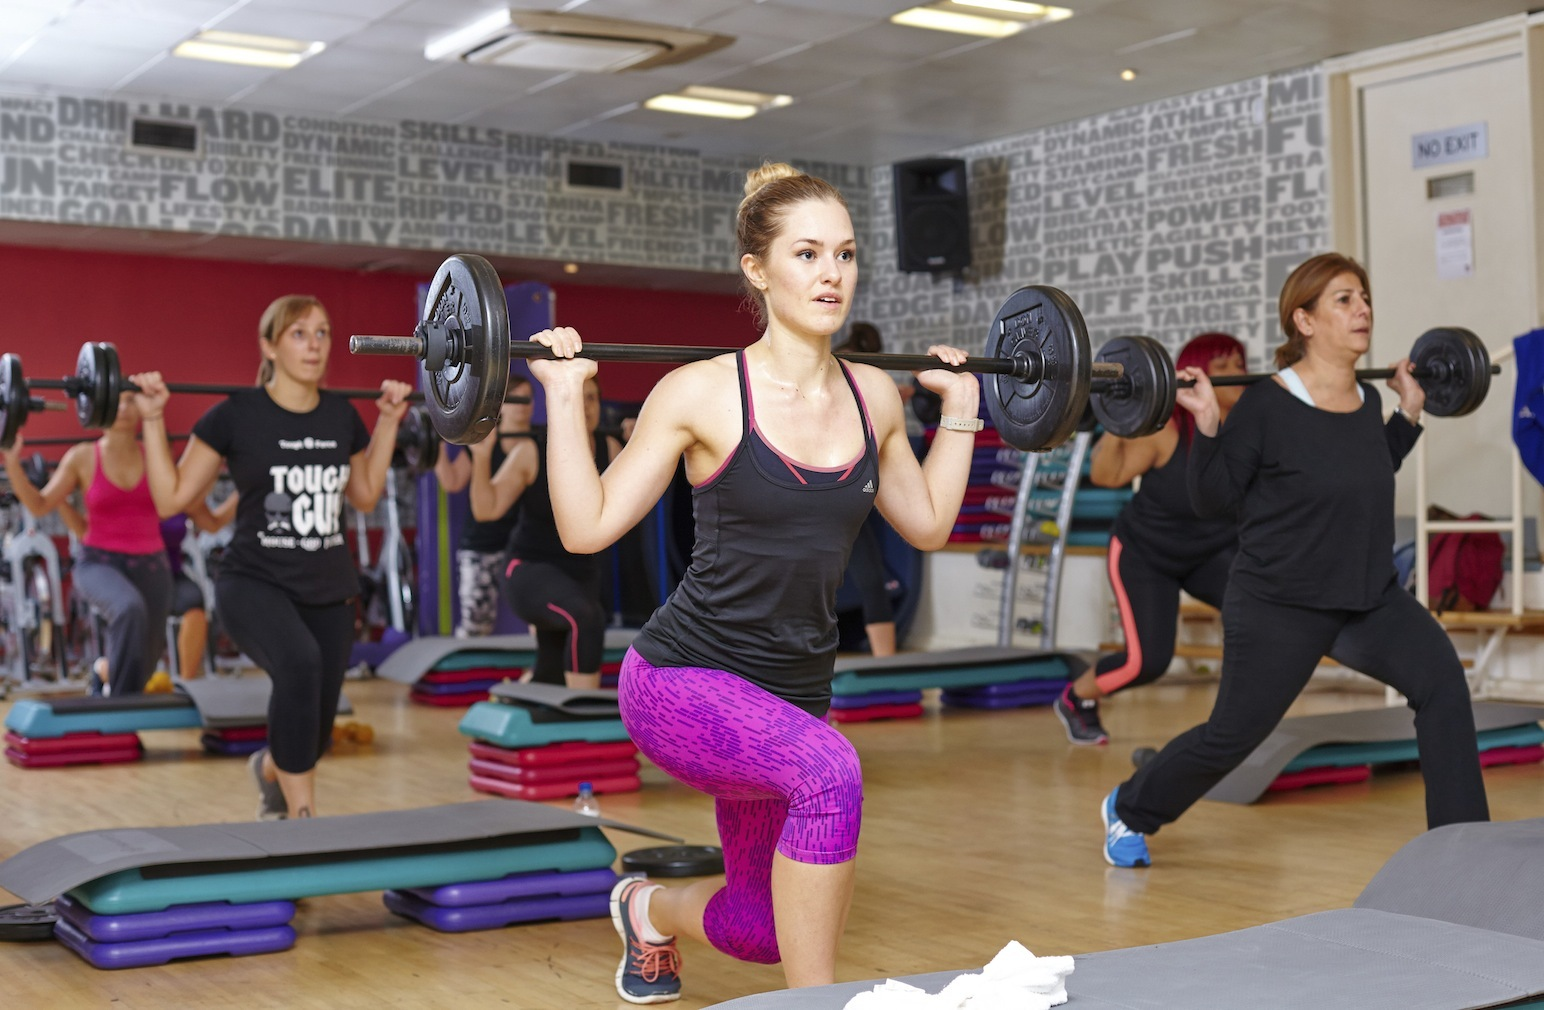 The best gyms in london fitness centres and classes in for Club piscine sport fitness